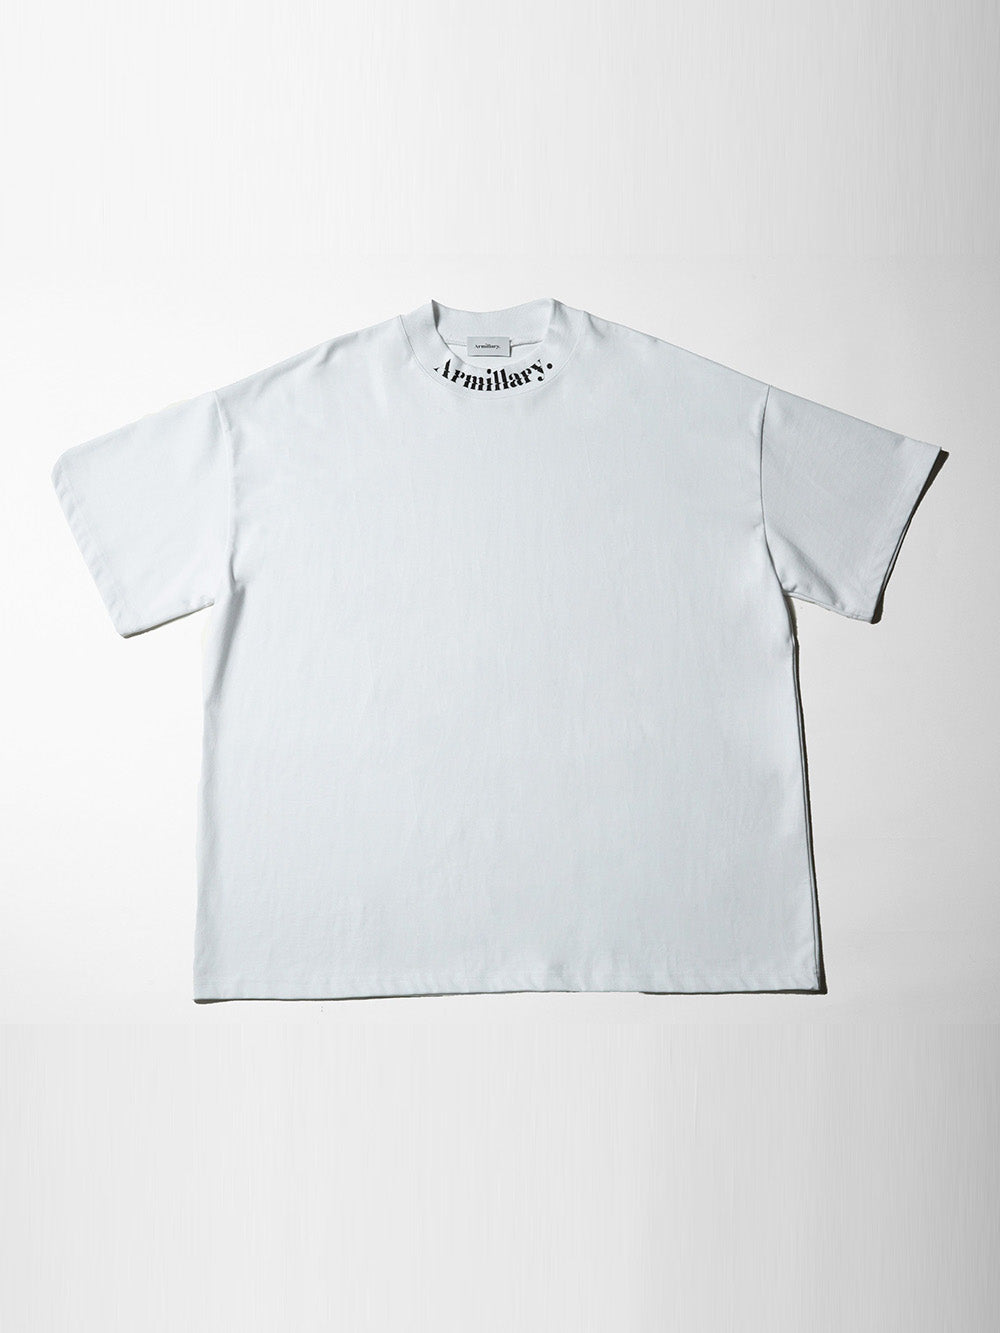 BOTTLE NECK  TEE